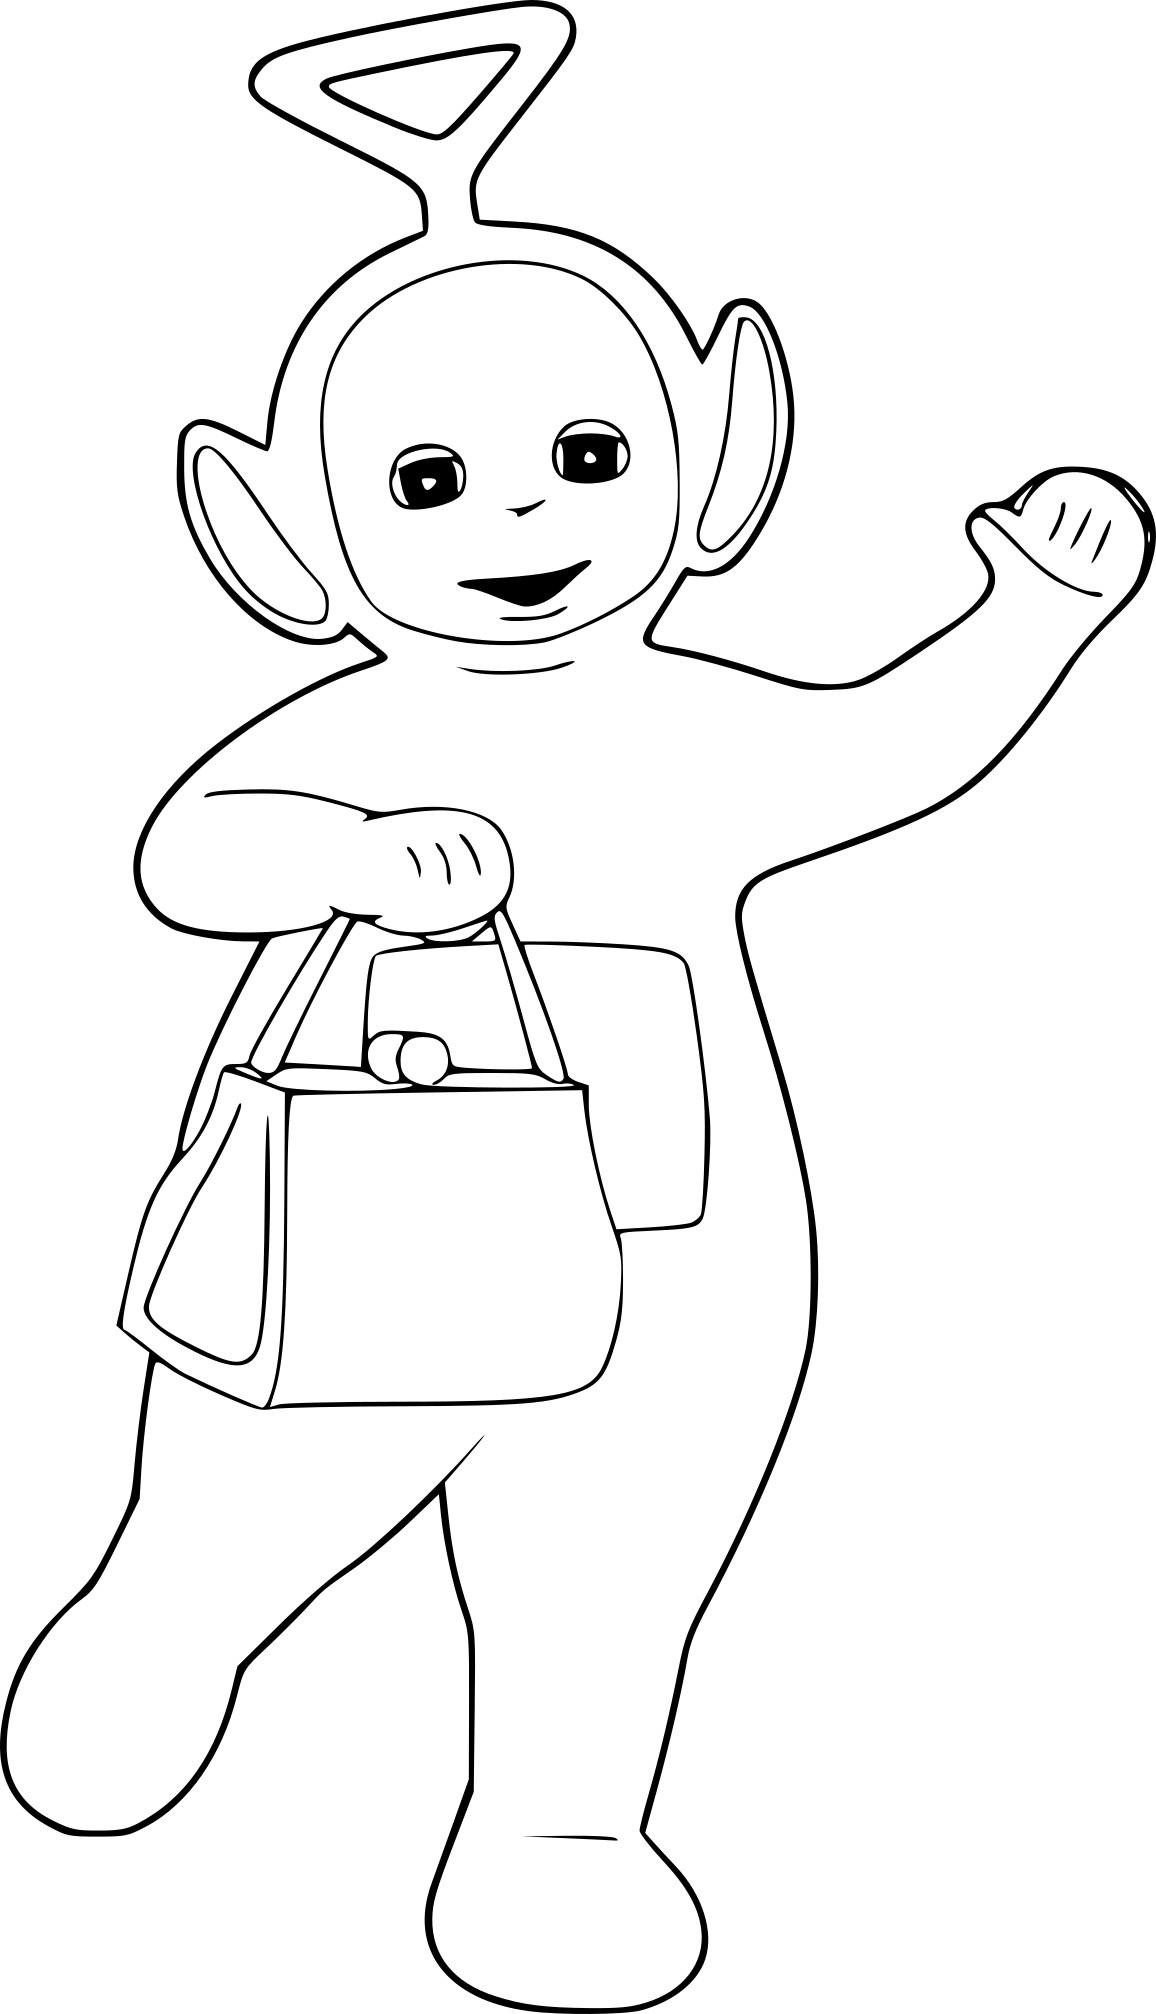 Coloriage Teletubbies Tinky Winky